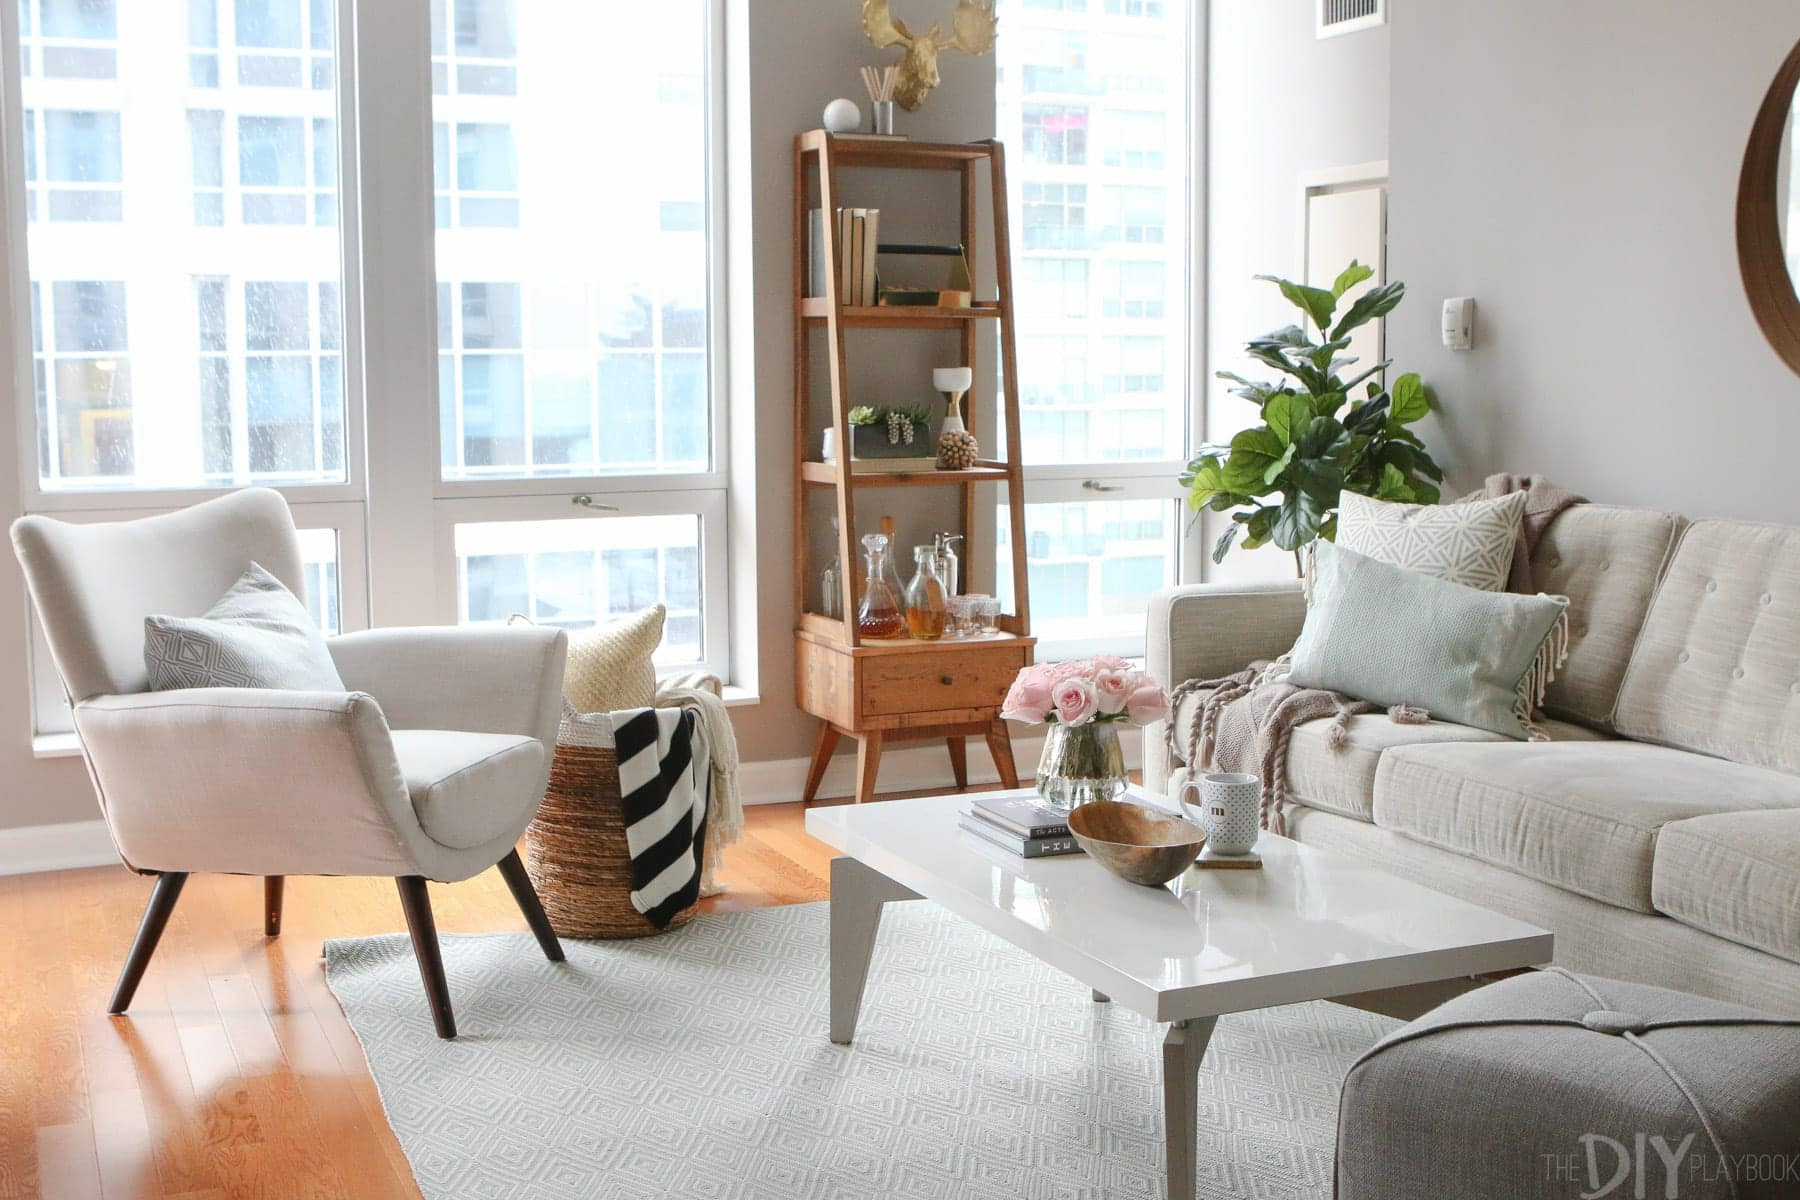 We styled the living room in our friend Maggie's condo. Here's how her designs turned out.